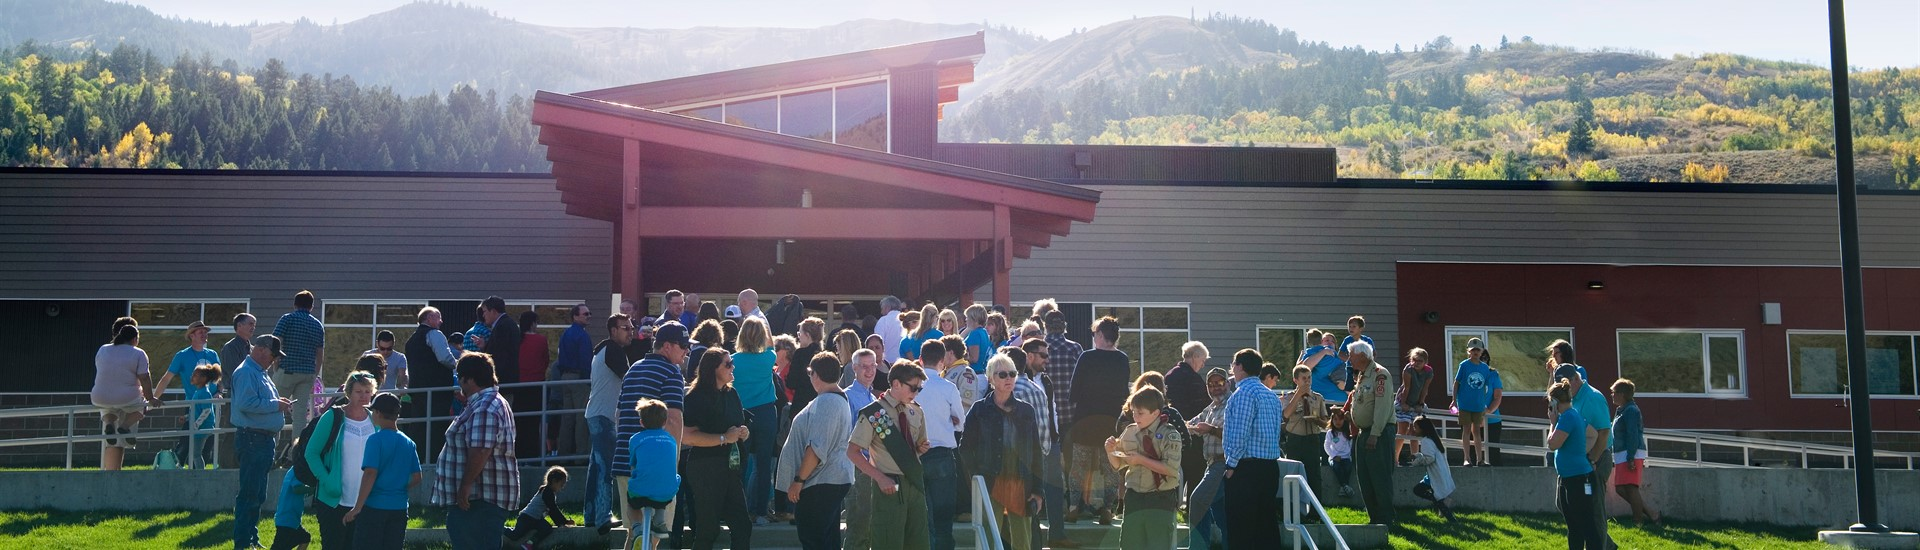 Guests at ribbon cutting event enjoy a beautiful day, celebrate new Munger Mountain elementary school